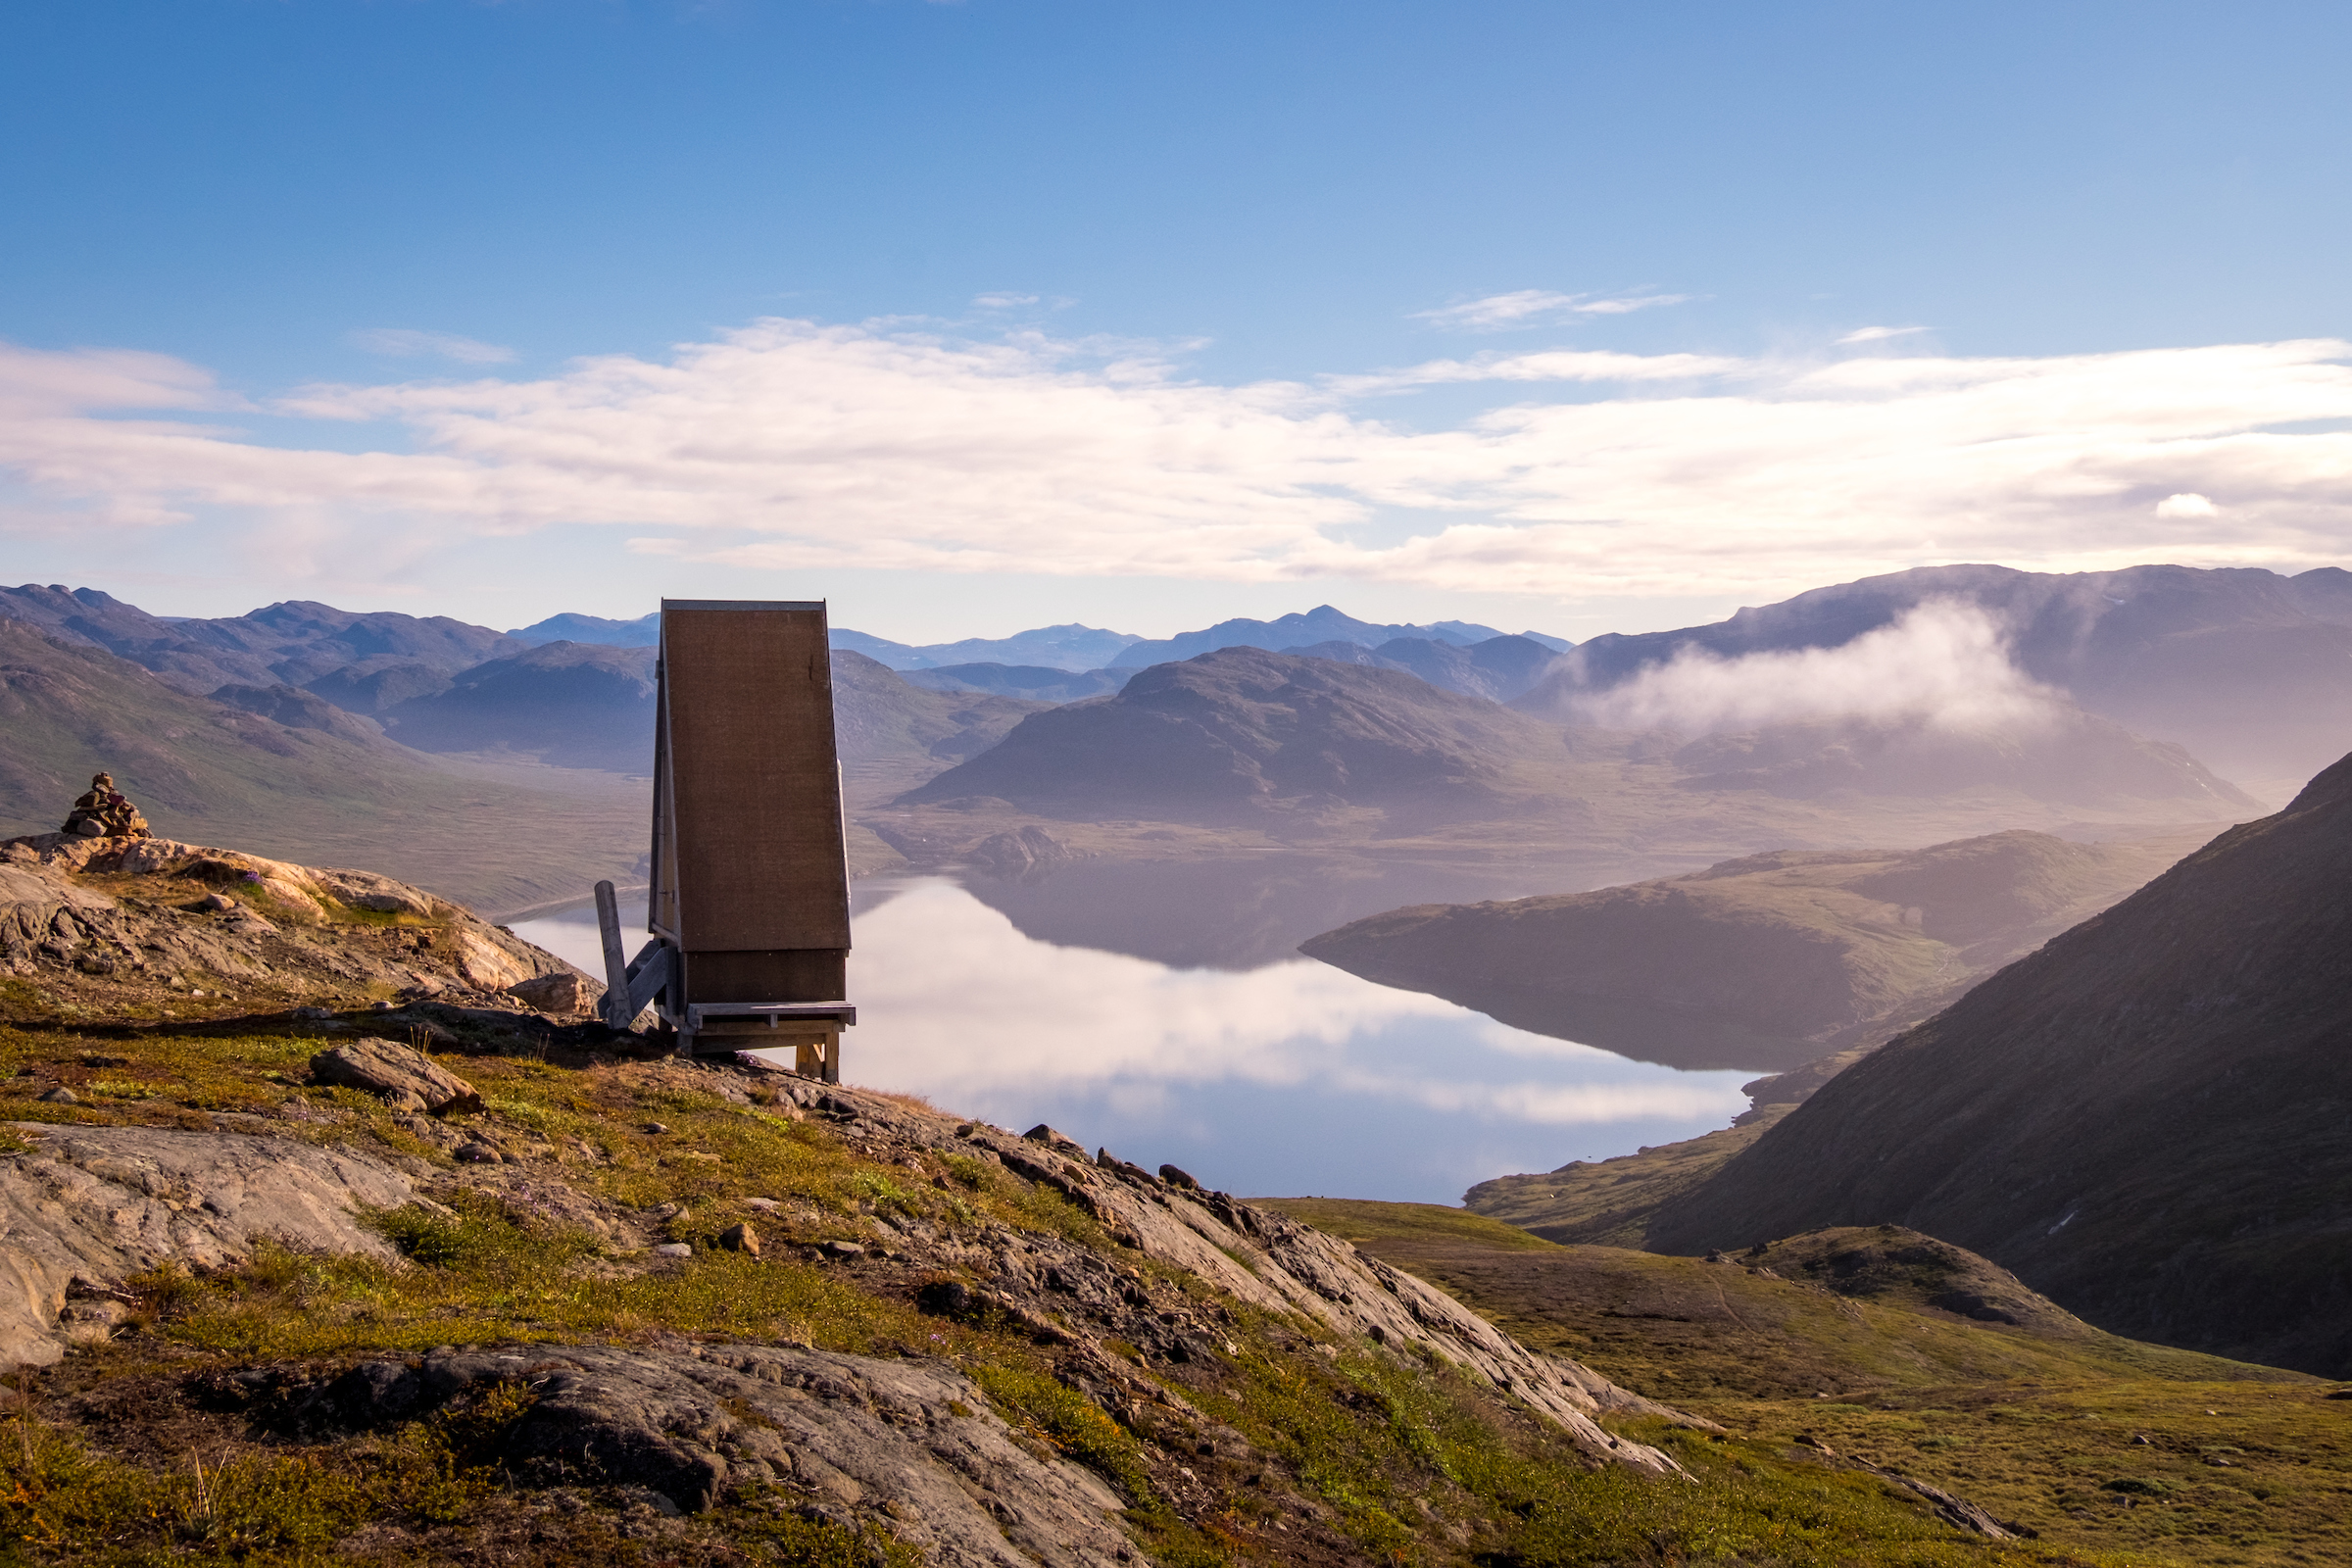 Pyramid shaped toilet overlooking Kangerluarsuk Tulleq fjord at the top of the pass - Day 8 of Arctic Circle Trail. By Lisa Germany